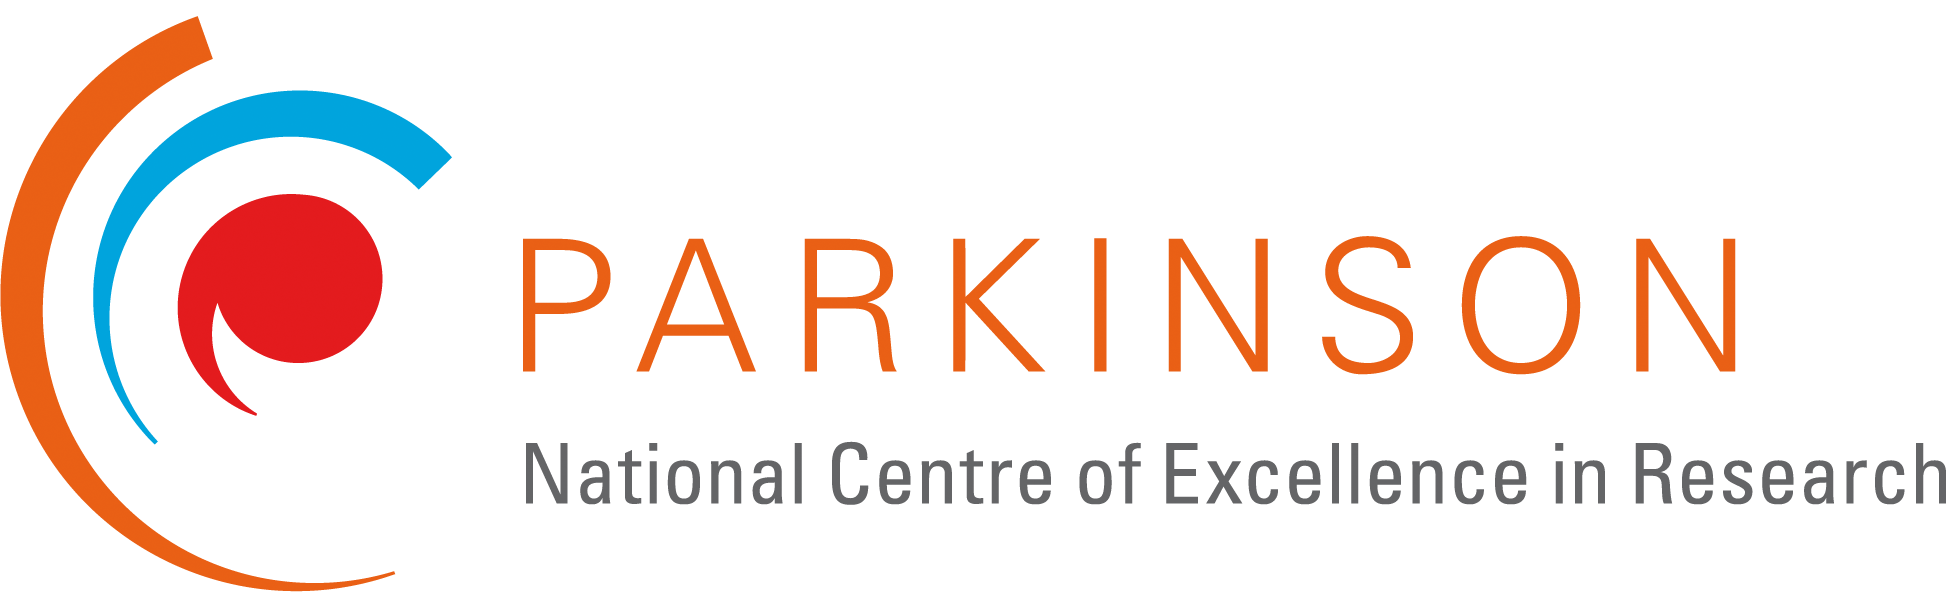 The National Centre of Excellence in Research on Parkinson